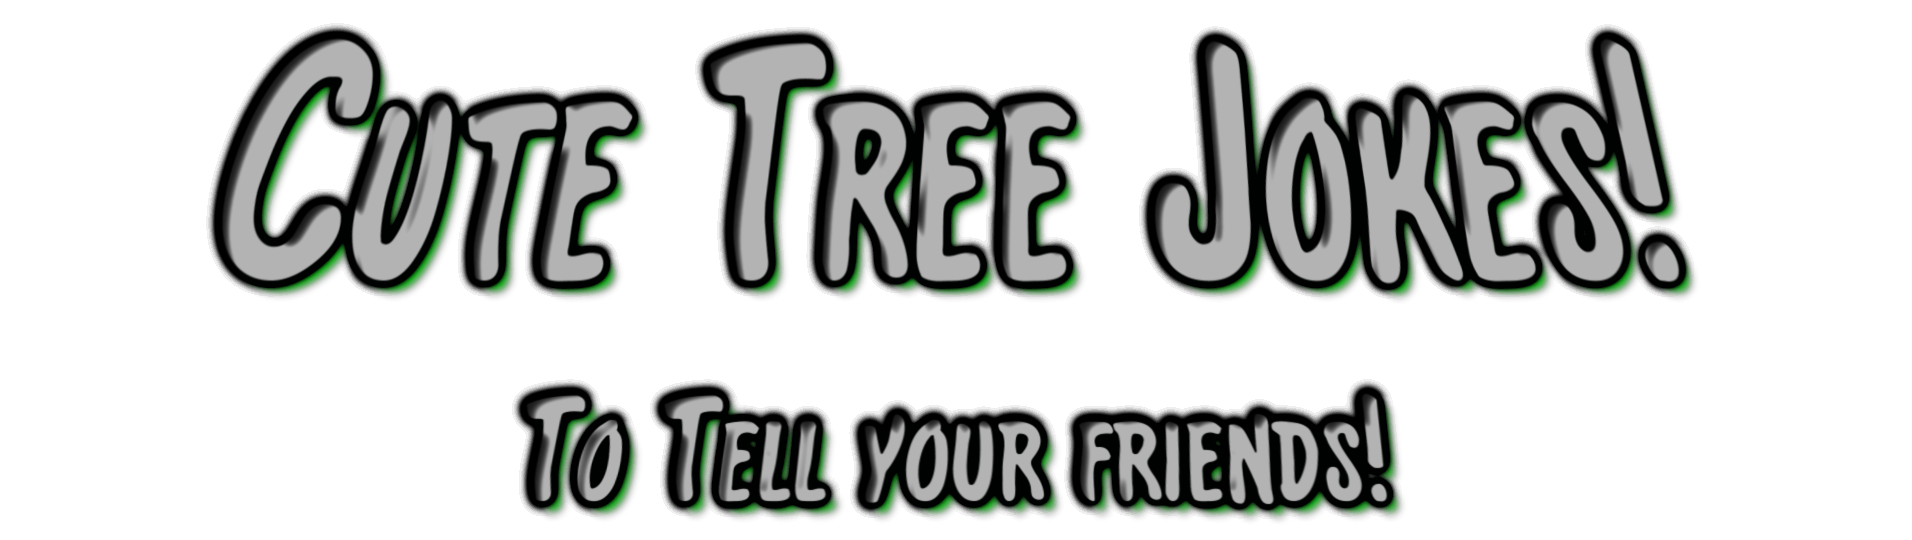 Cute tree jokes kids find truth